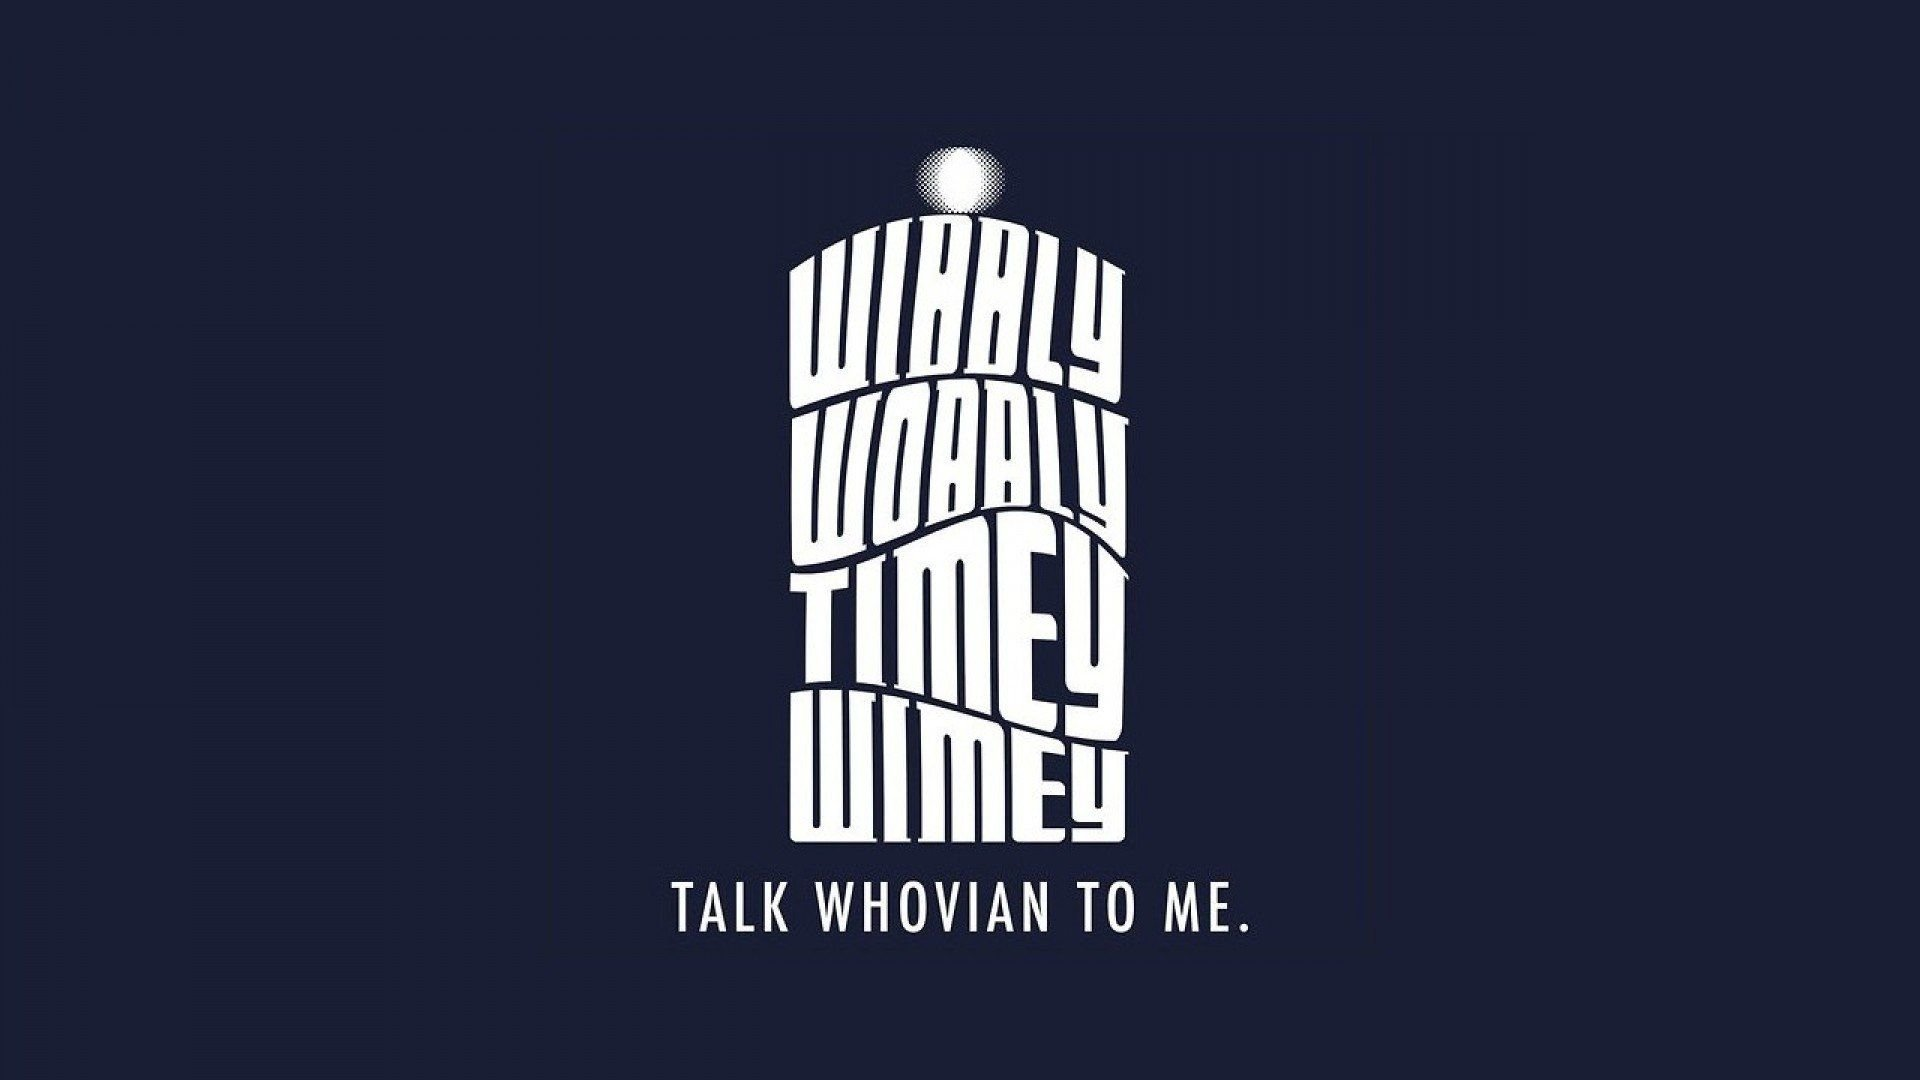 Doctor Who Hd Wallpapers Top Free Doctor Who Hd